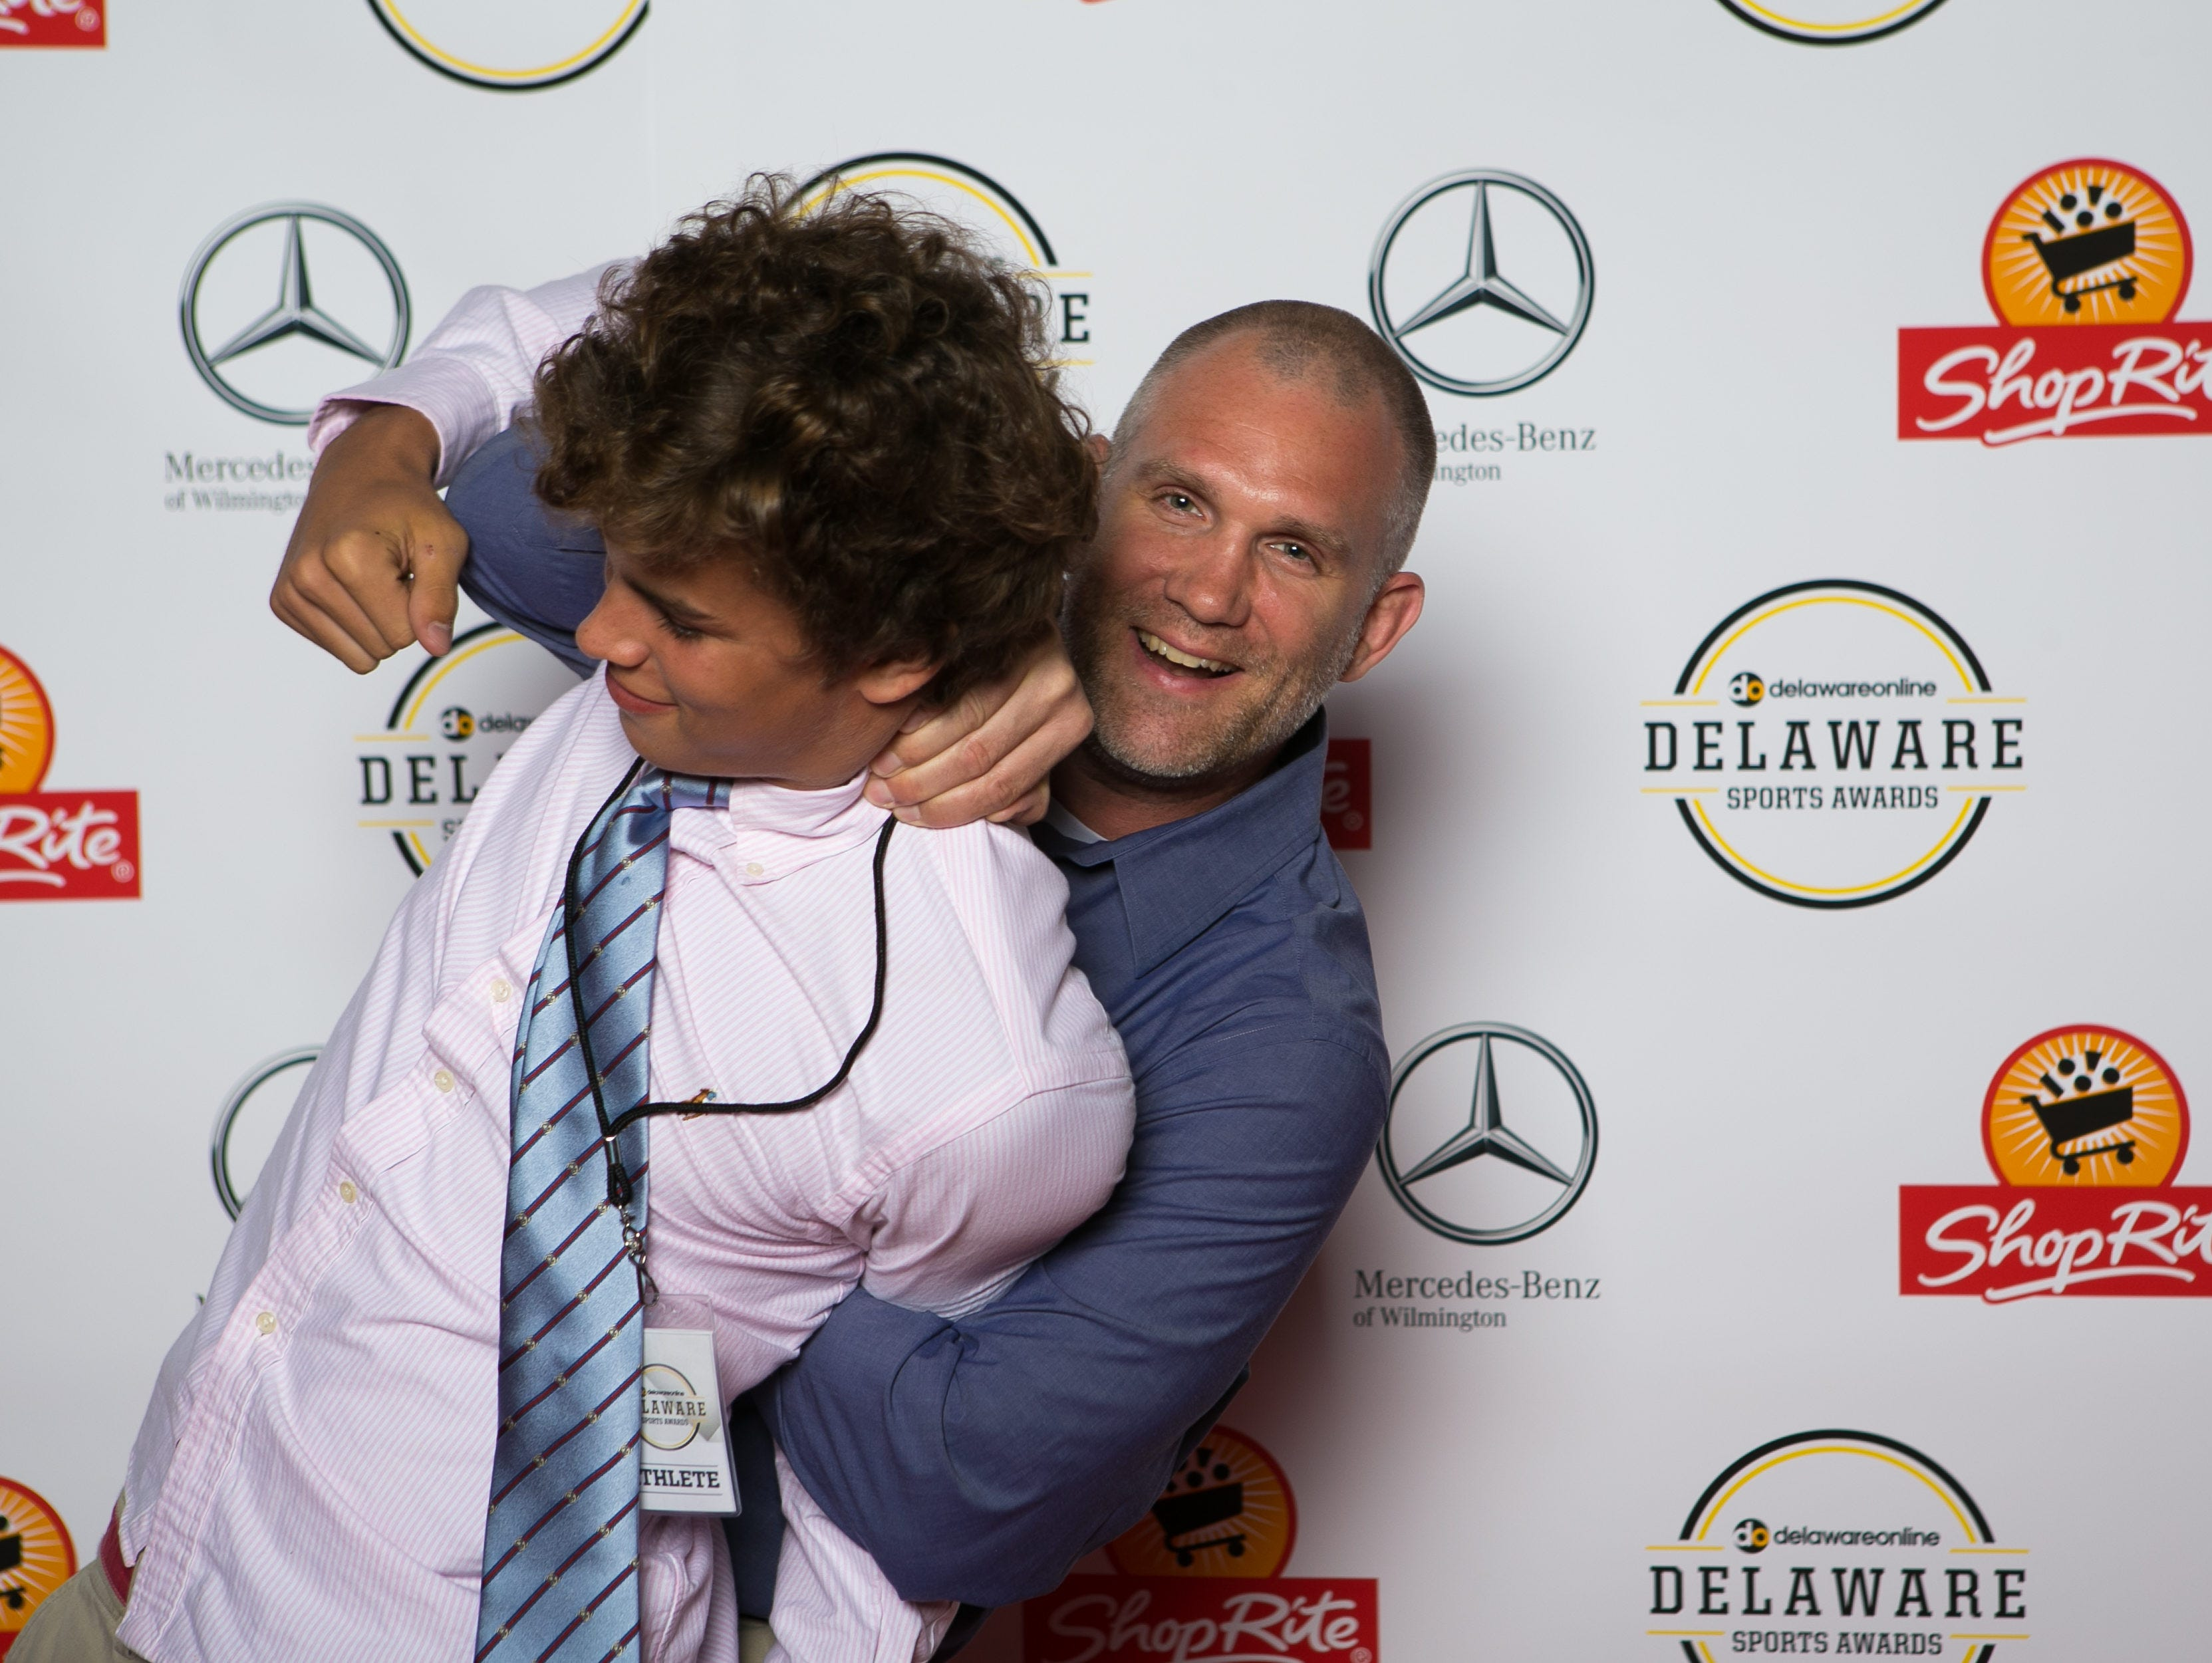 Coach Cory Frederick puts a wrestling move on Andrew Brooks on the red carpet at the Delaware Sports Awards.